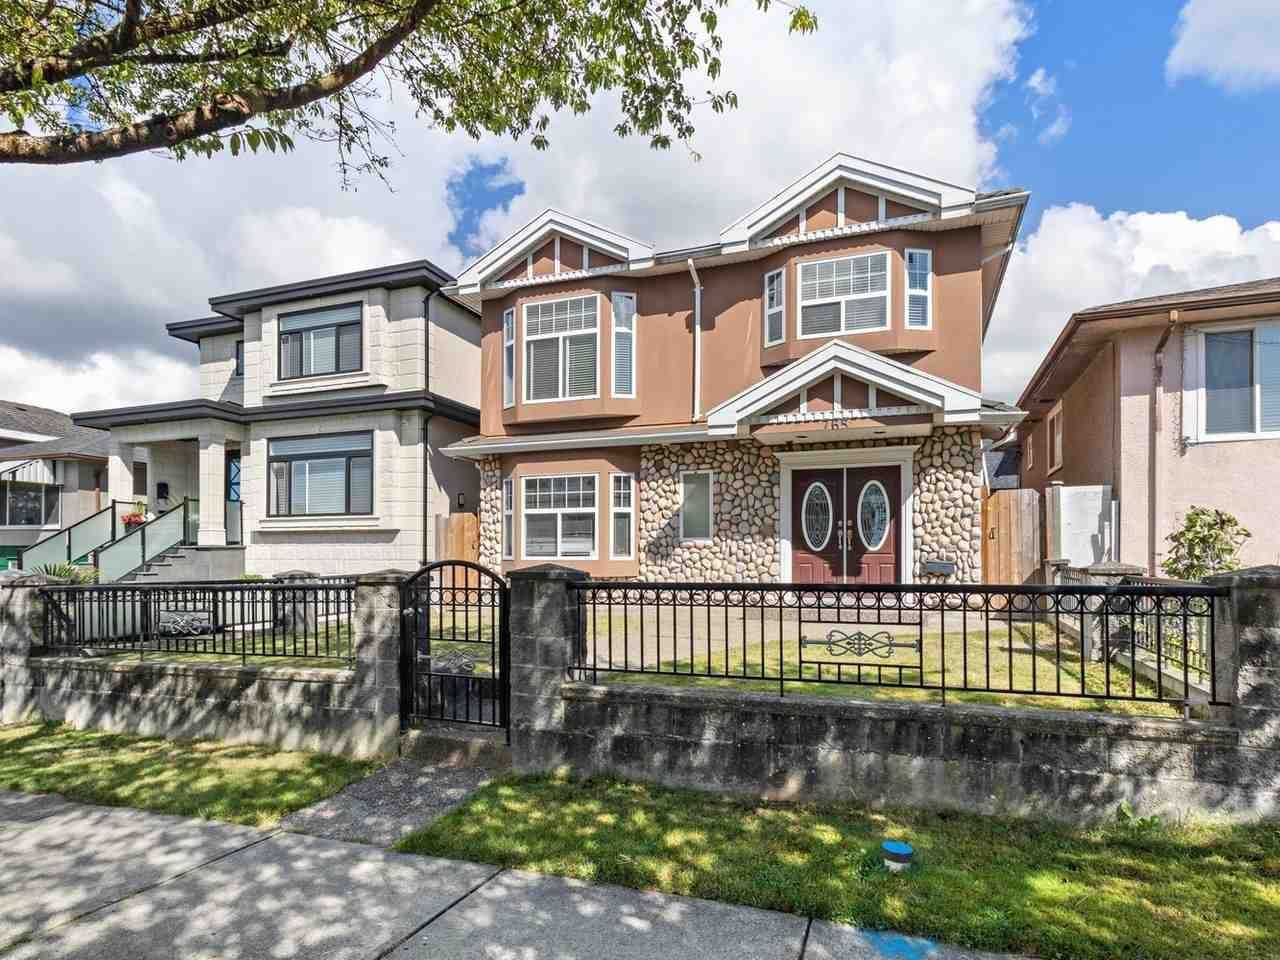 Main Photo: 765 E 56TH AVENUE in Vancouver: South Vancouver House for sale (Vancouver East)  : MLS®# R2491110